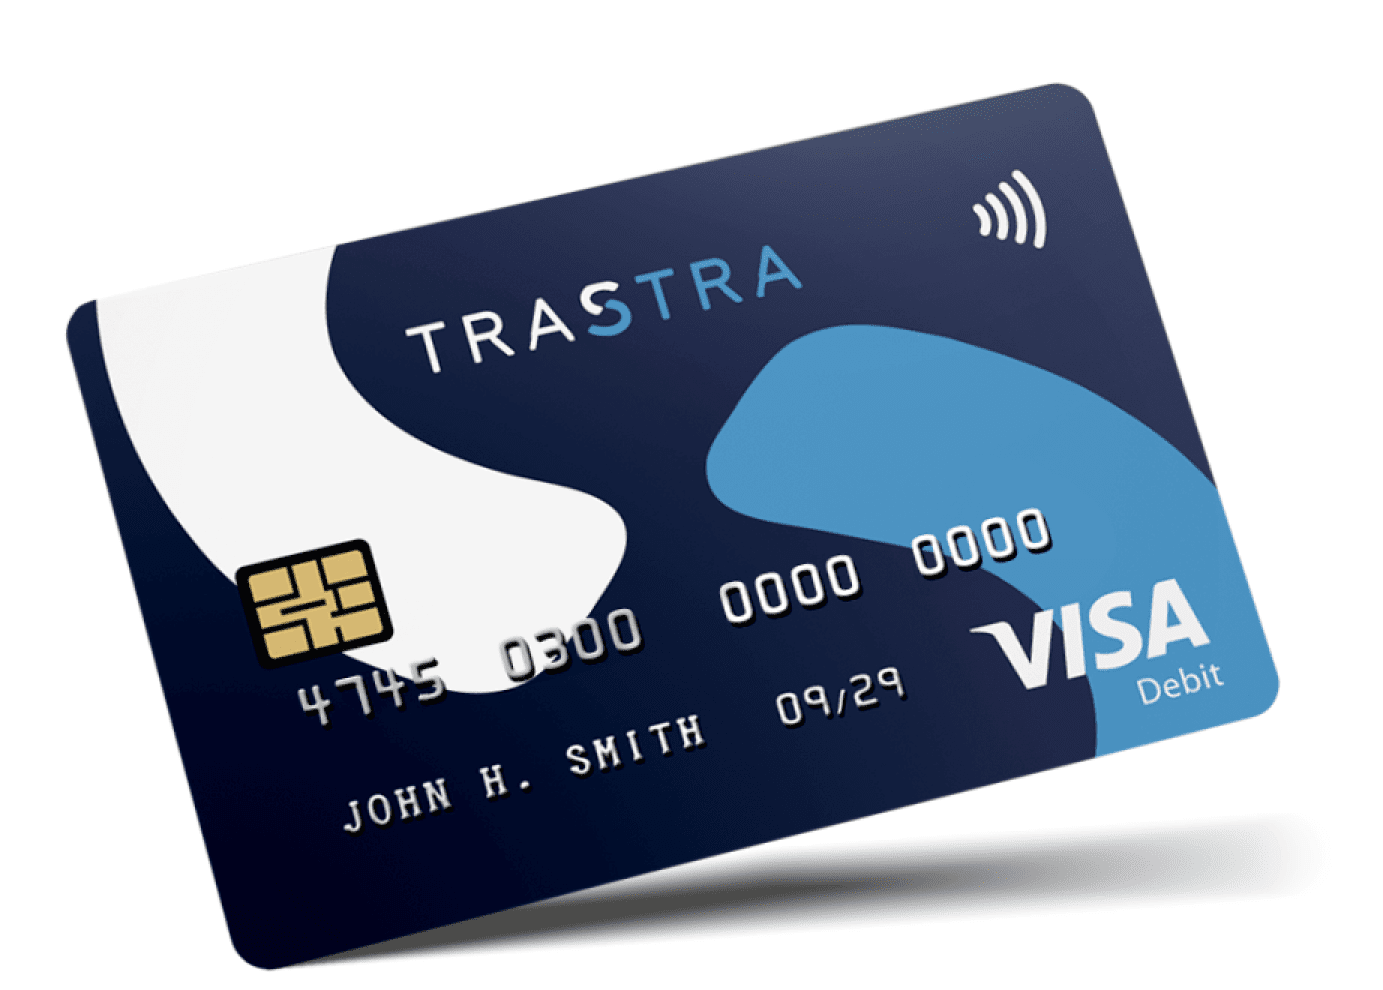 Why TRASTRA?